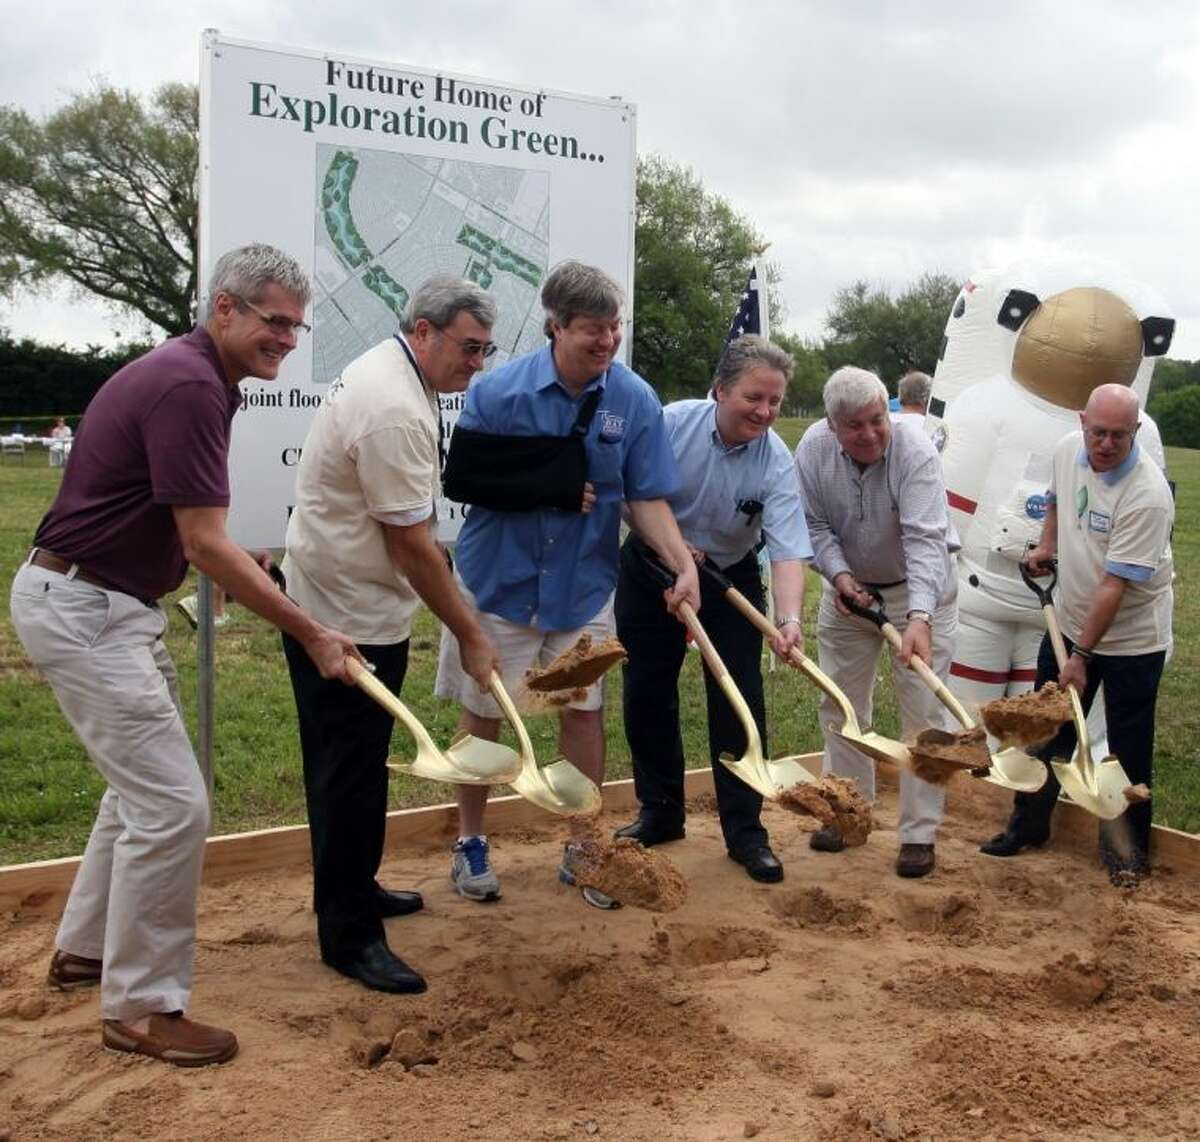 The groundbreaking for Exploration Green officially starts the construction. The Clear Lake City Water Authority (CLCWA) held the official ground breaking ceremony at 16205 Diana Lane for the redevelopment project on the property of the former golf course.